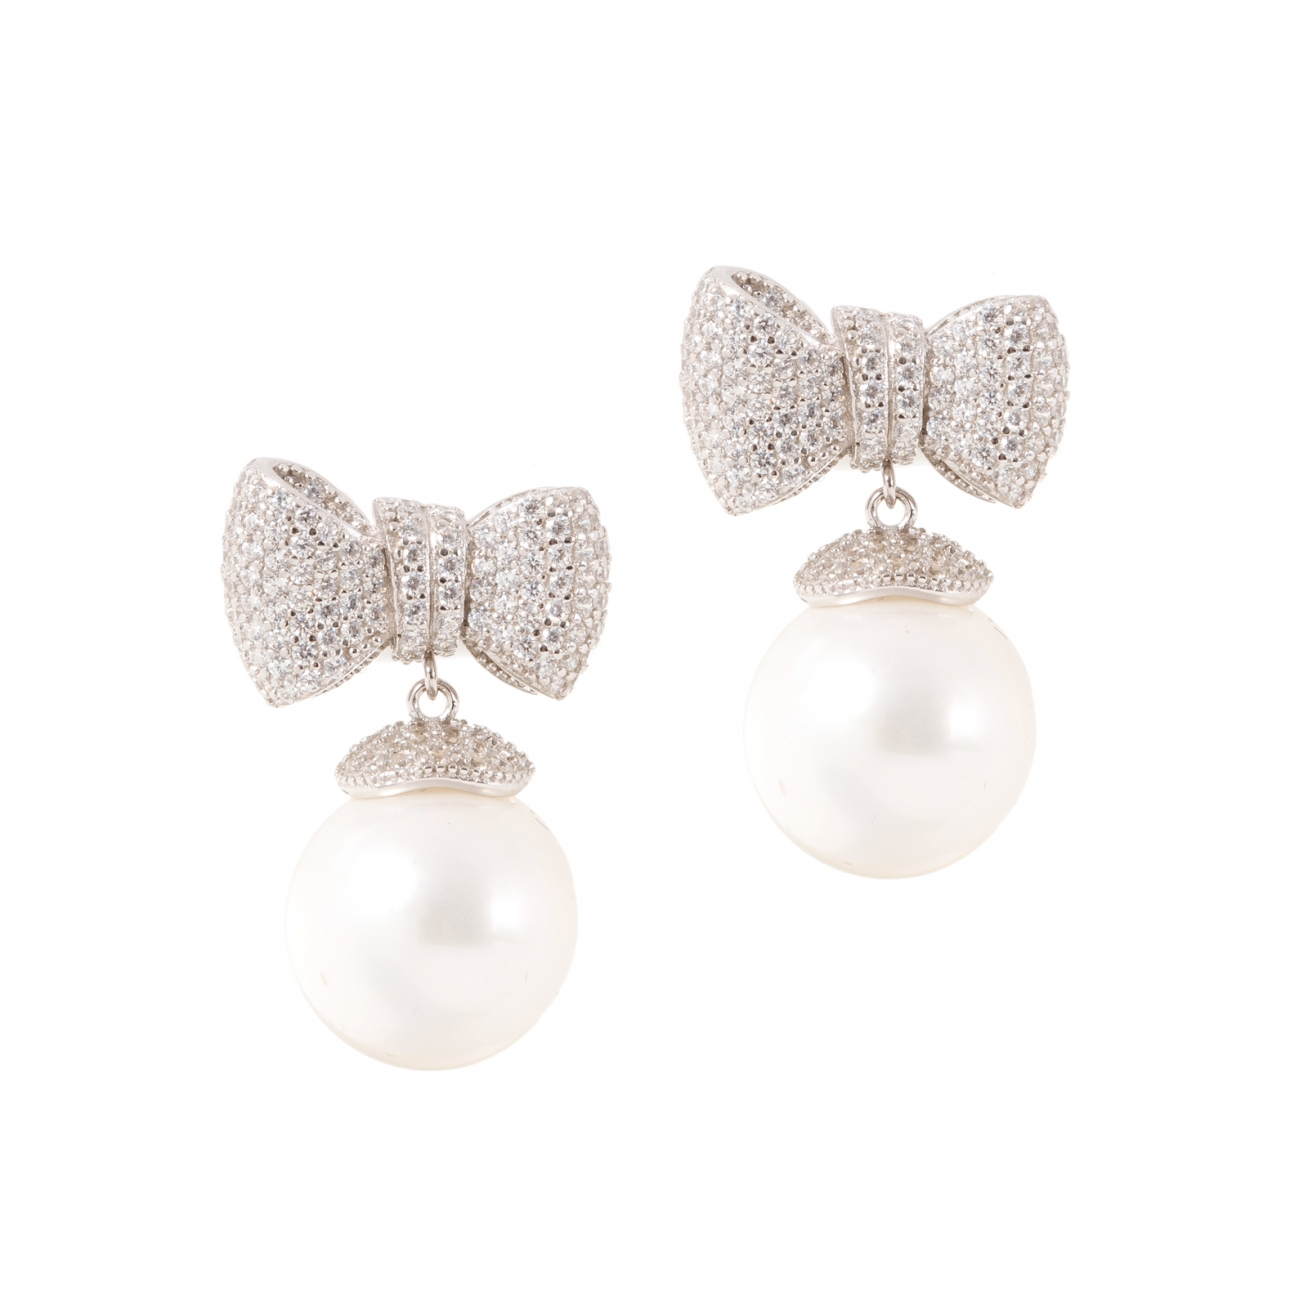 Pearls With White Bow Earrings